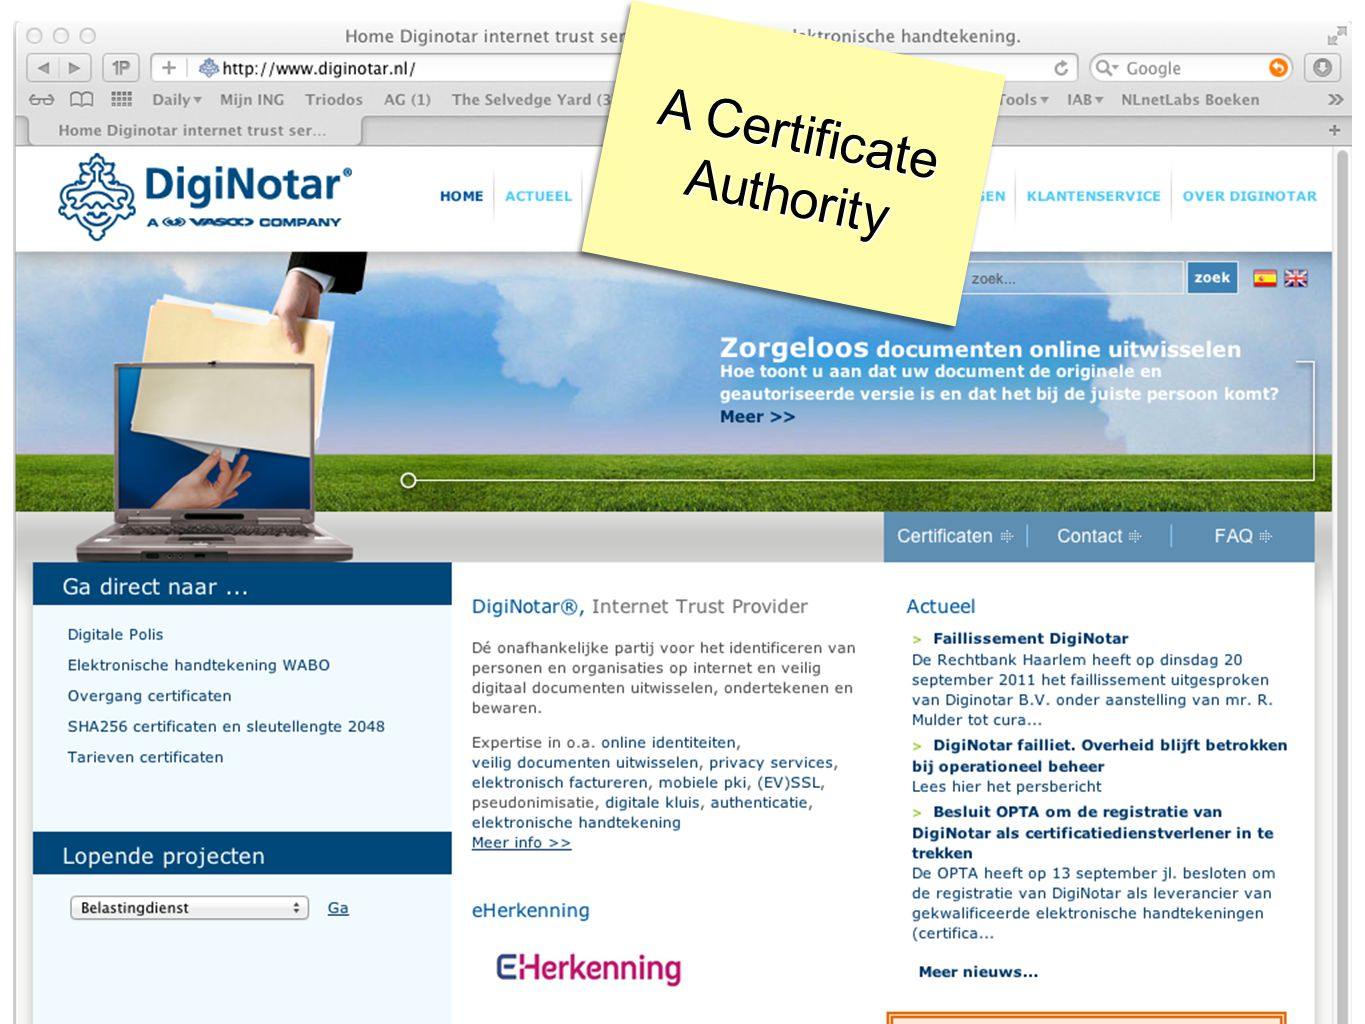 A Certificate Authority